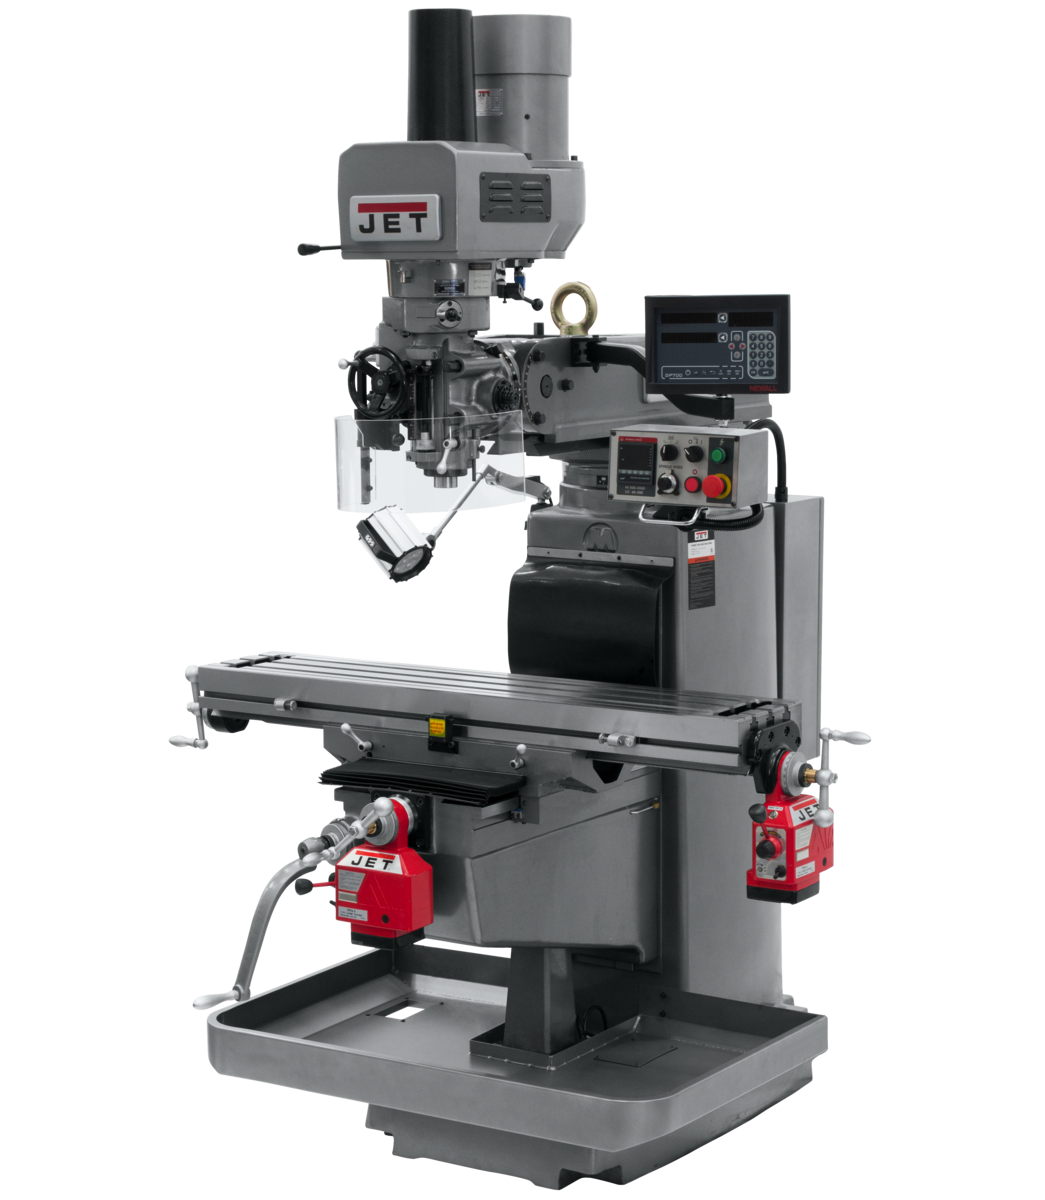 JTM-1050EVS2/230 Mill With 3-Axis Newall DP700 DRO (Quill) With X, Y and Z-Axis Powerfeeds and Air Powered Draw Bar